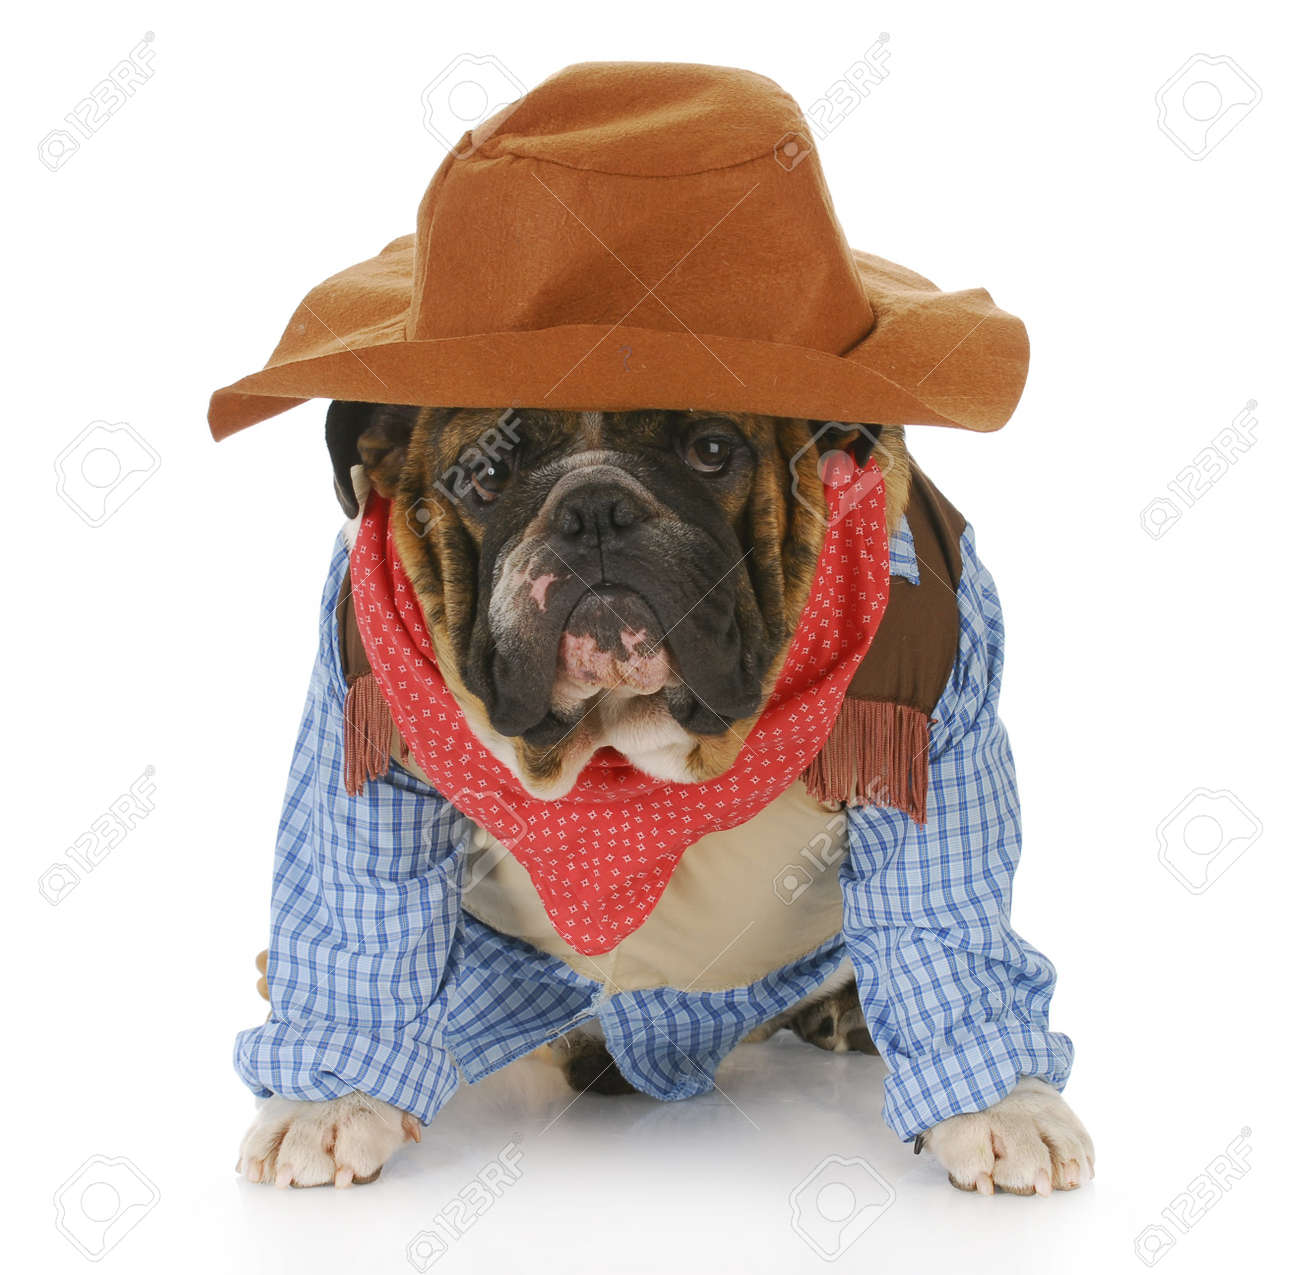 English Bulldog Wearing Western Hat And Cowboy Shirt With Reflection